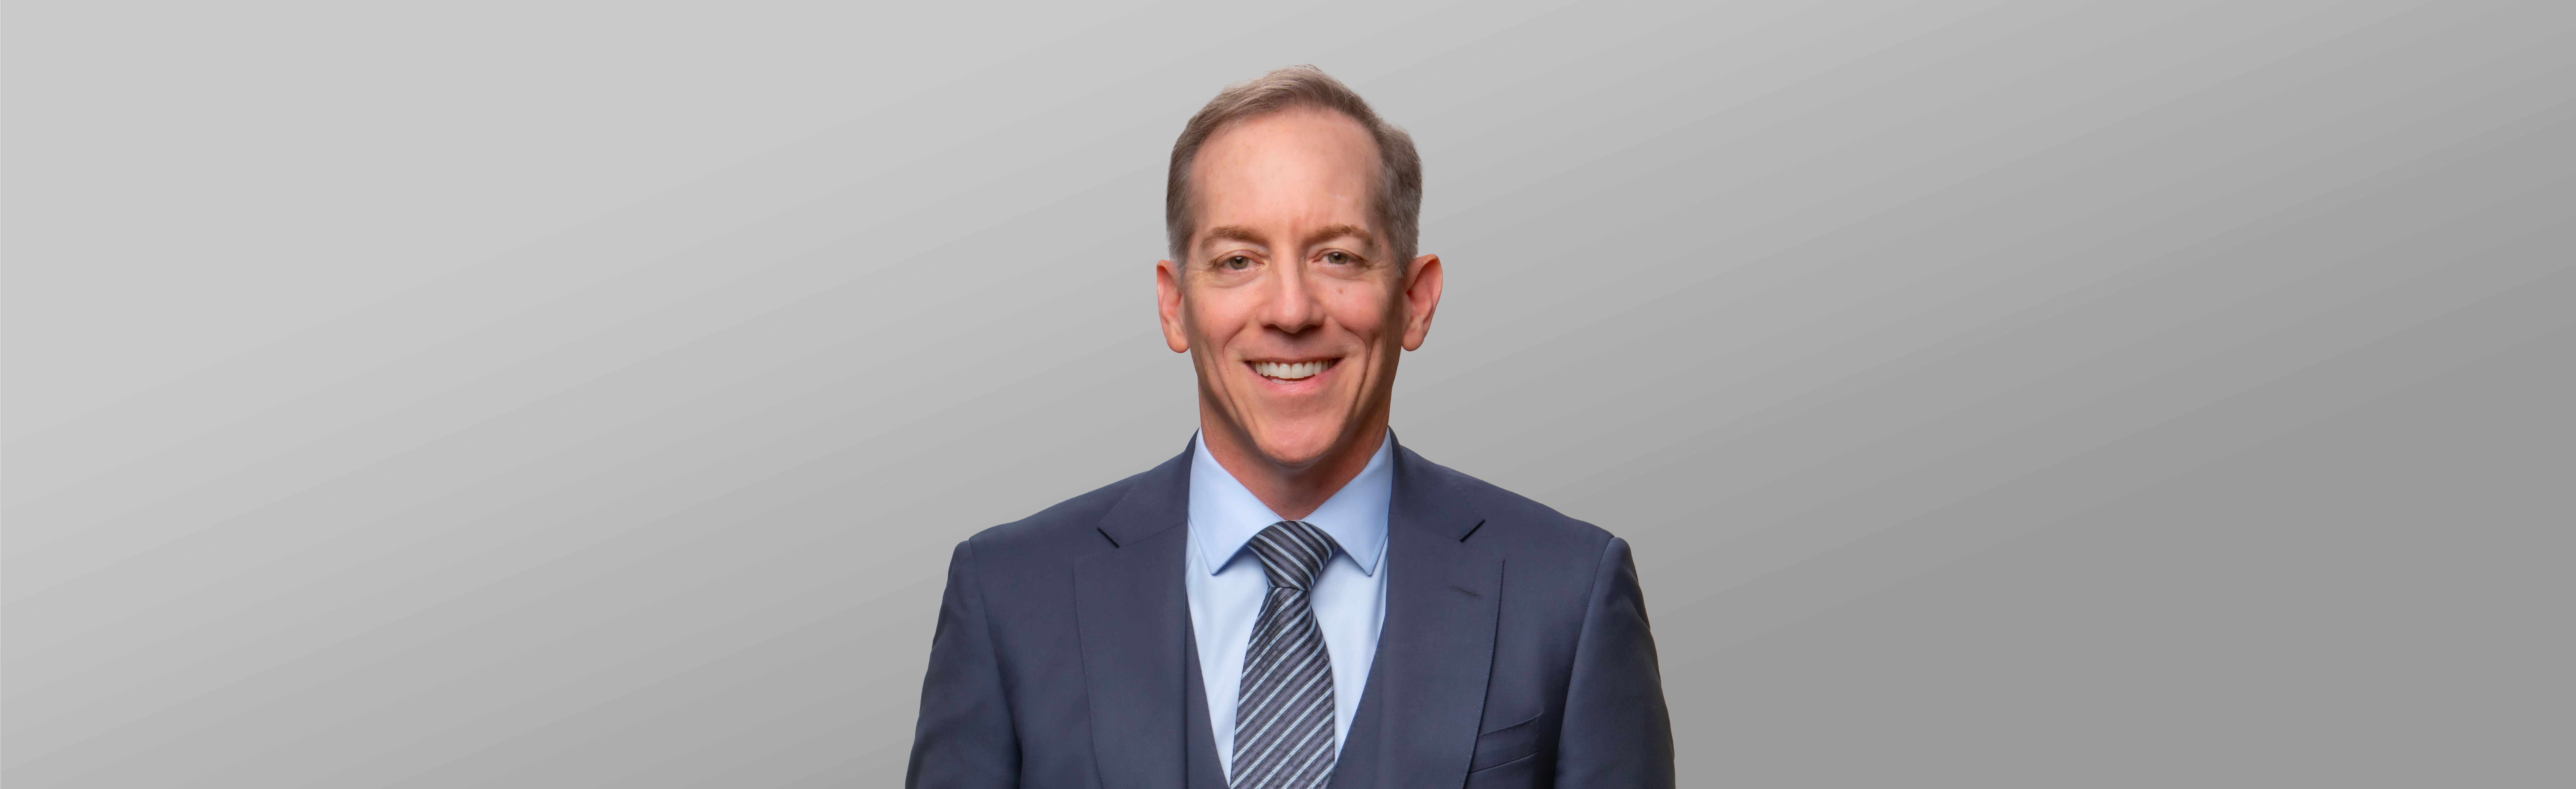 Photo of Matthew Walsh, Chief Financial Officer